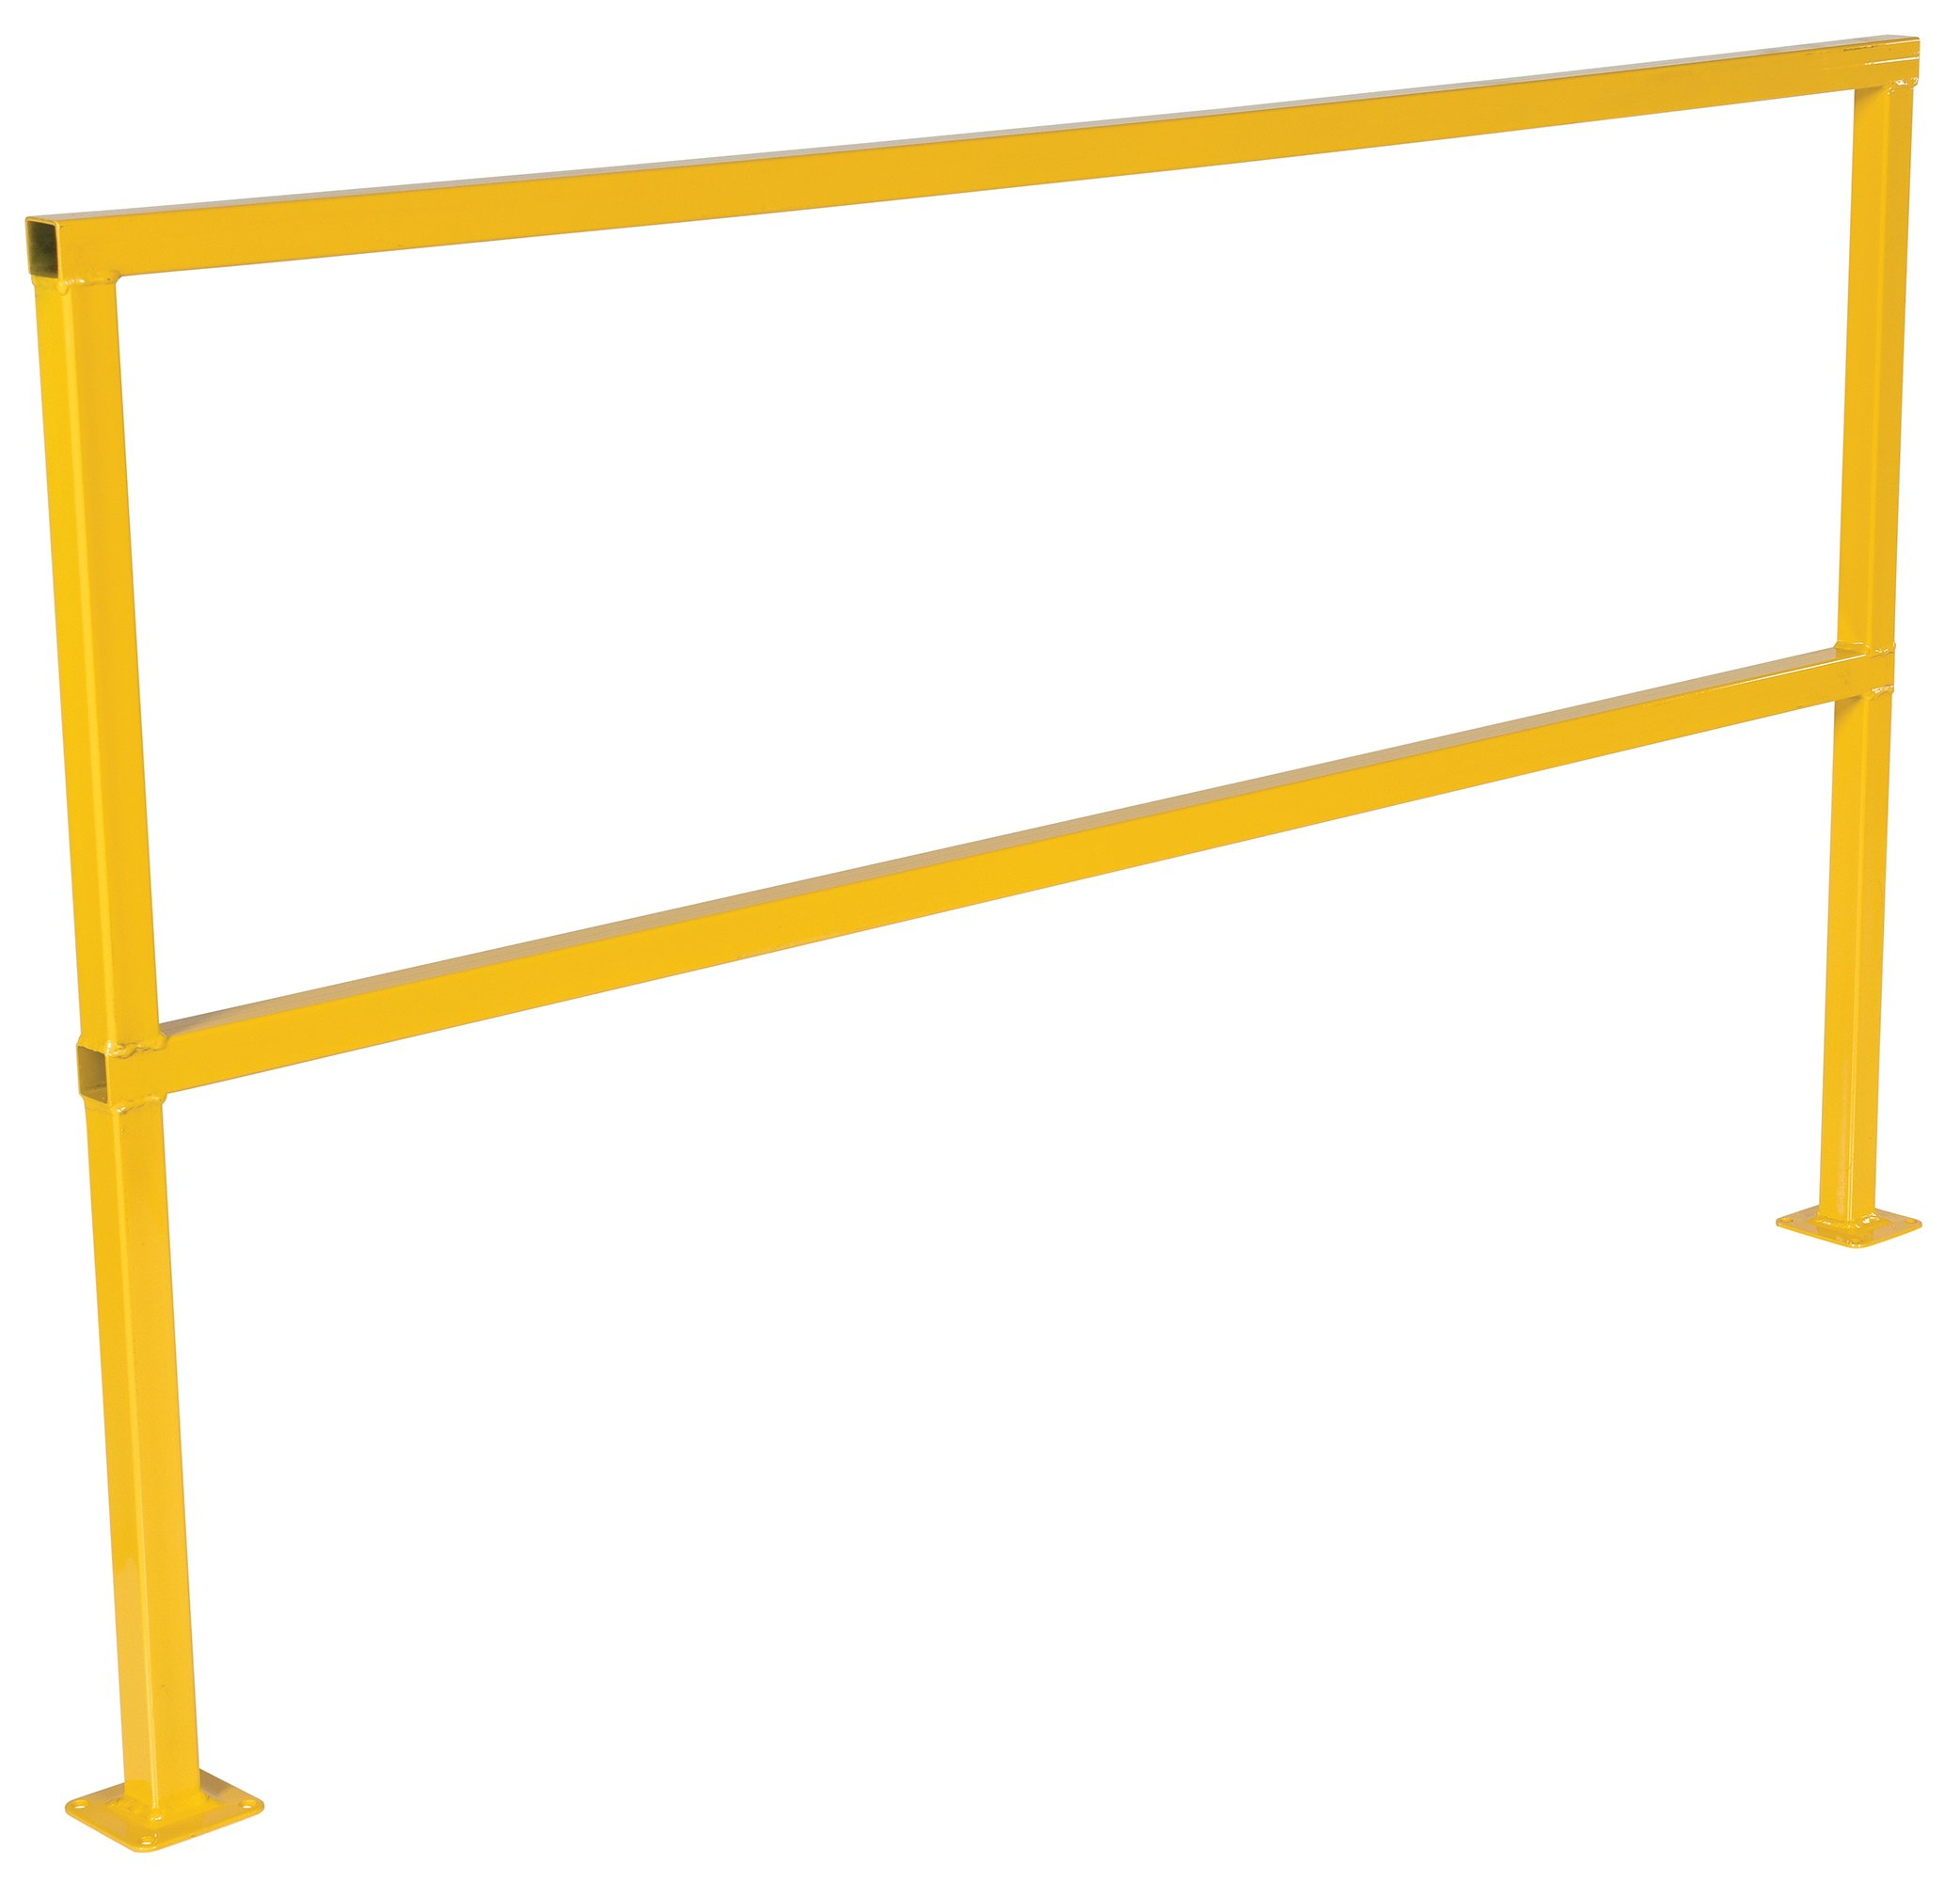 Vestil SQ-72 Square Safety Rigid Handrail without Toeboard, Steel, 72'' Usable Length, 41-5/8'' x 4'' x 74-1/2''